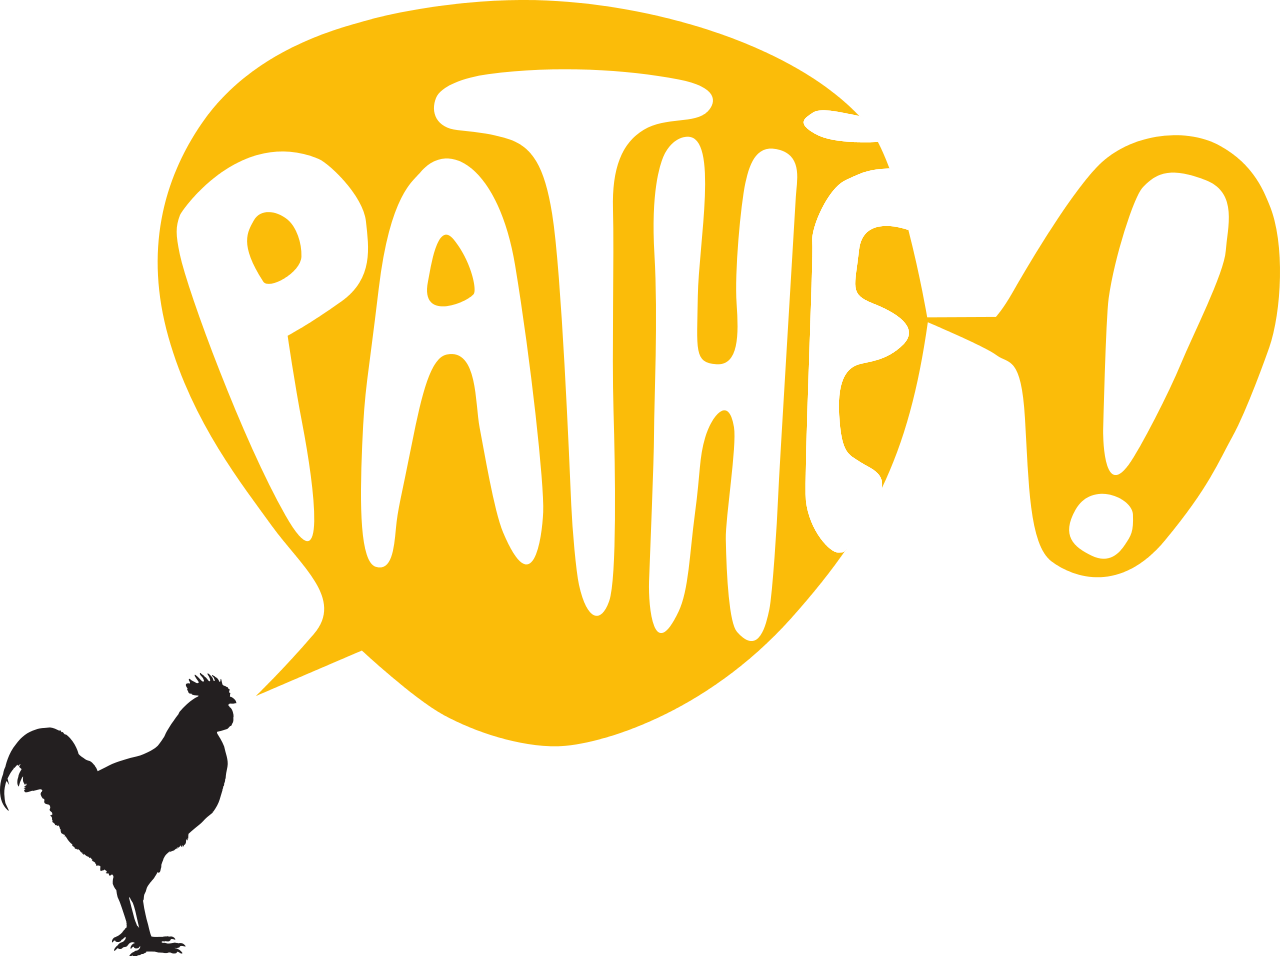 Pathe_logo.svg